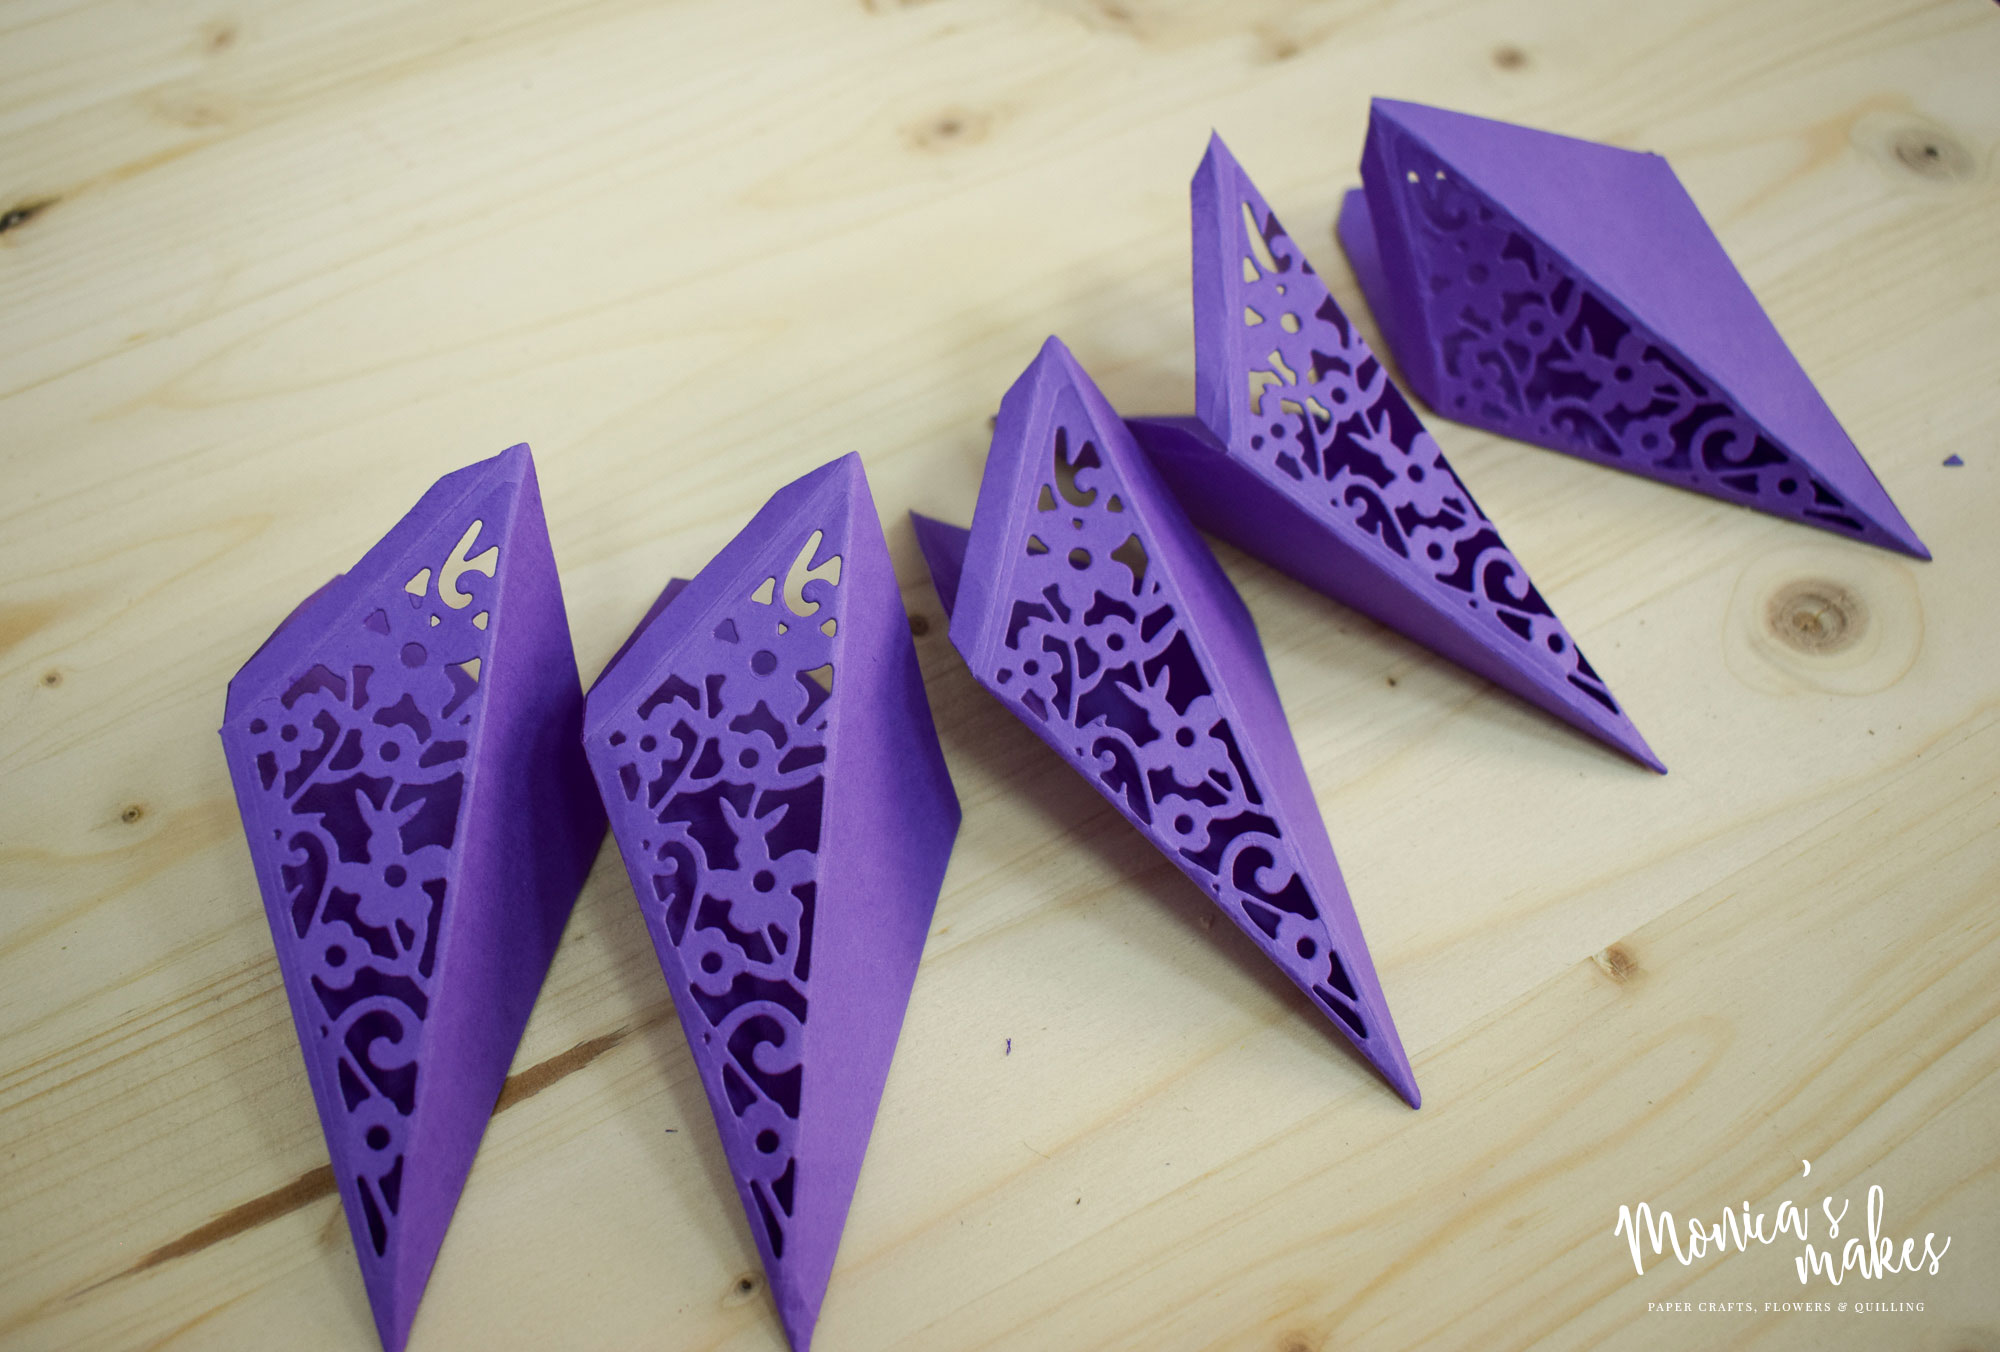 Pretty 3D Purple Paper Star Tutorial, made with Sizzix dies - See more at monicabadiu.com